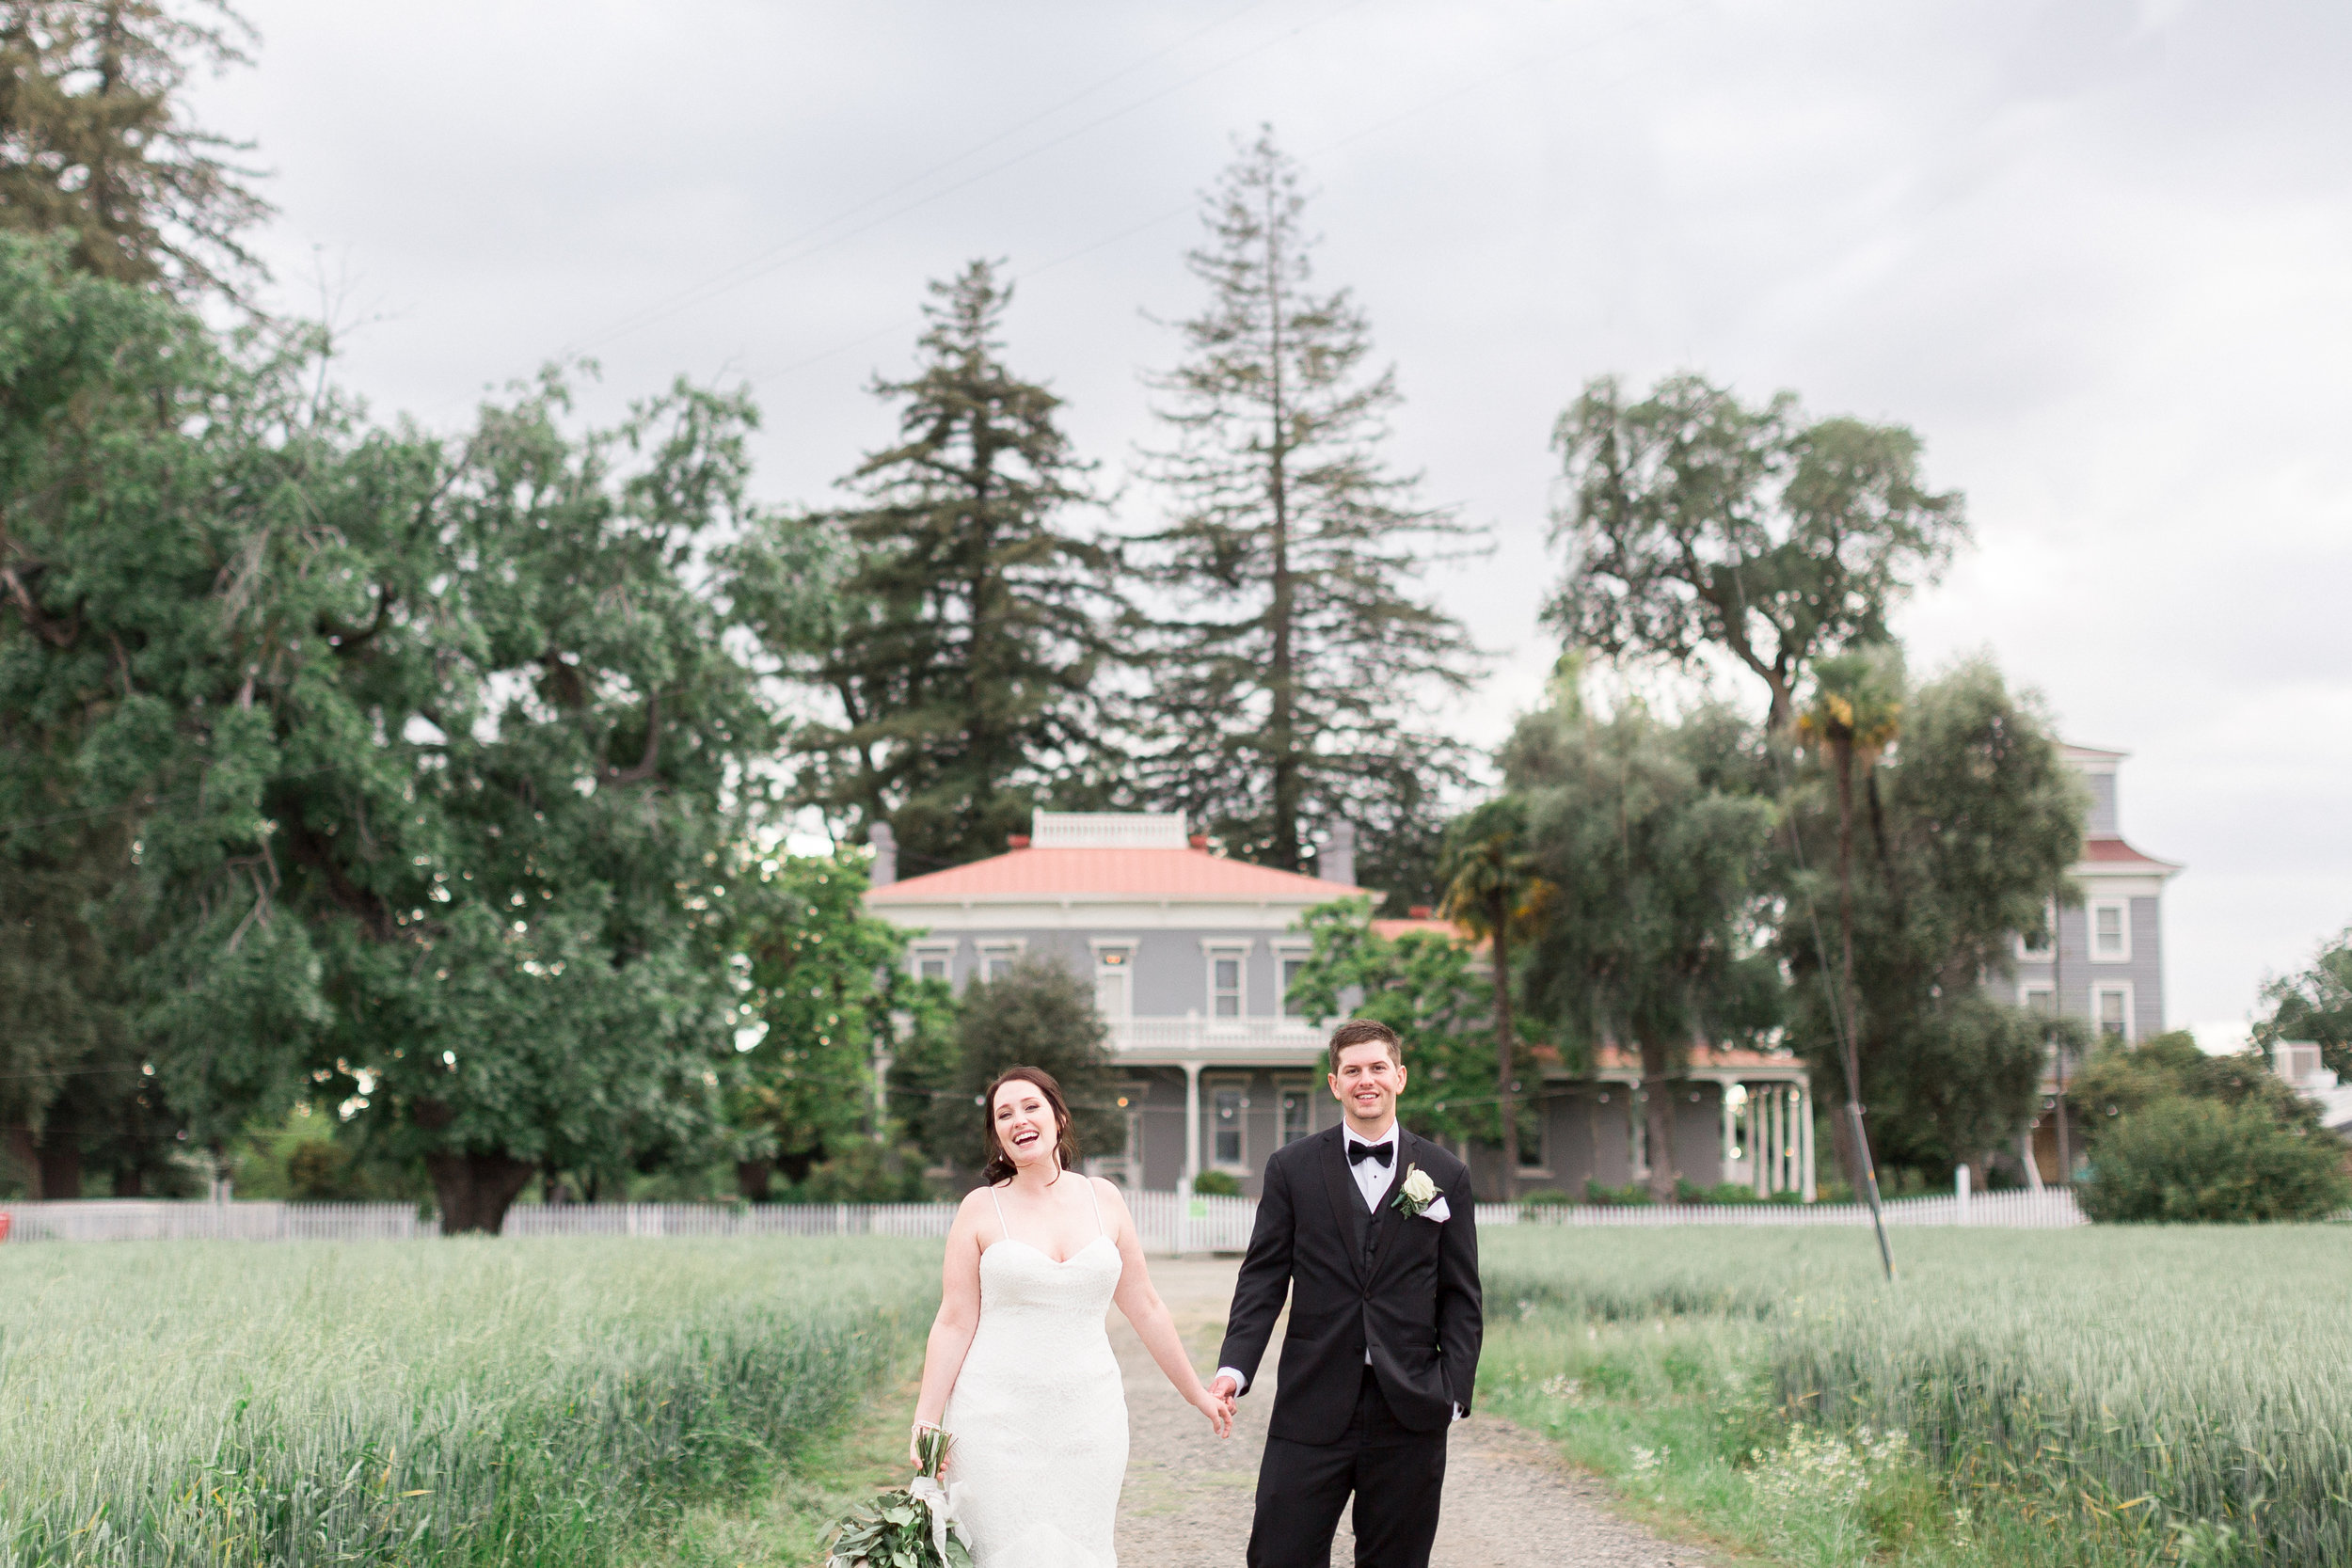 Patrick-Ranch-Wedding-Photos-237.jpg